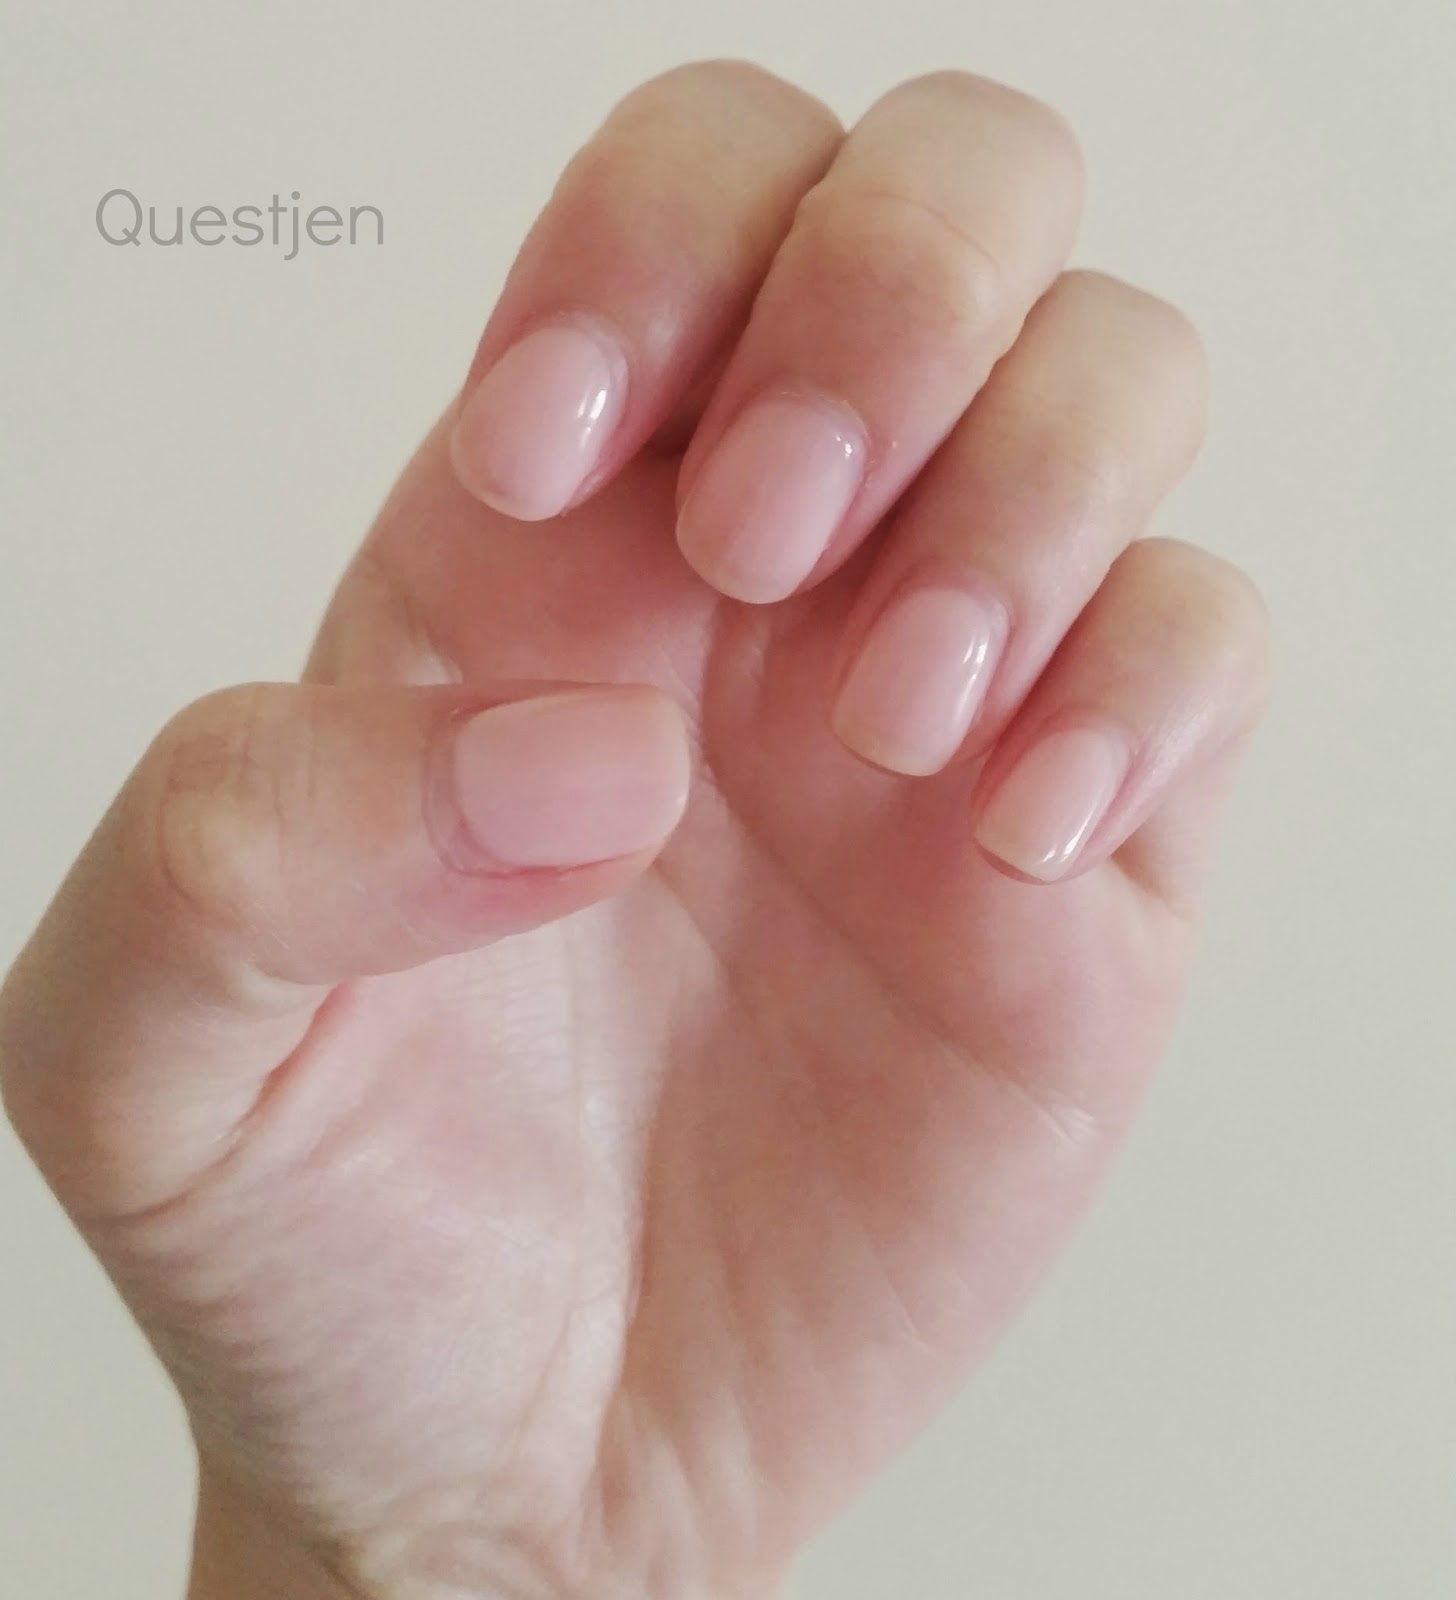 QuestJen: Beginner\'s Nail Guide to Acrylics and Shellac